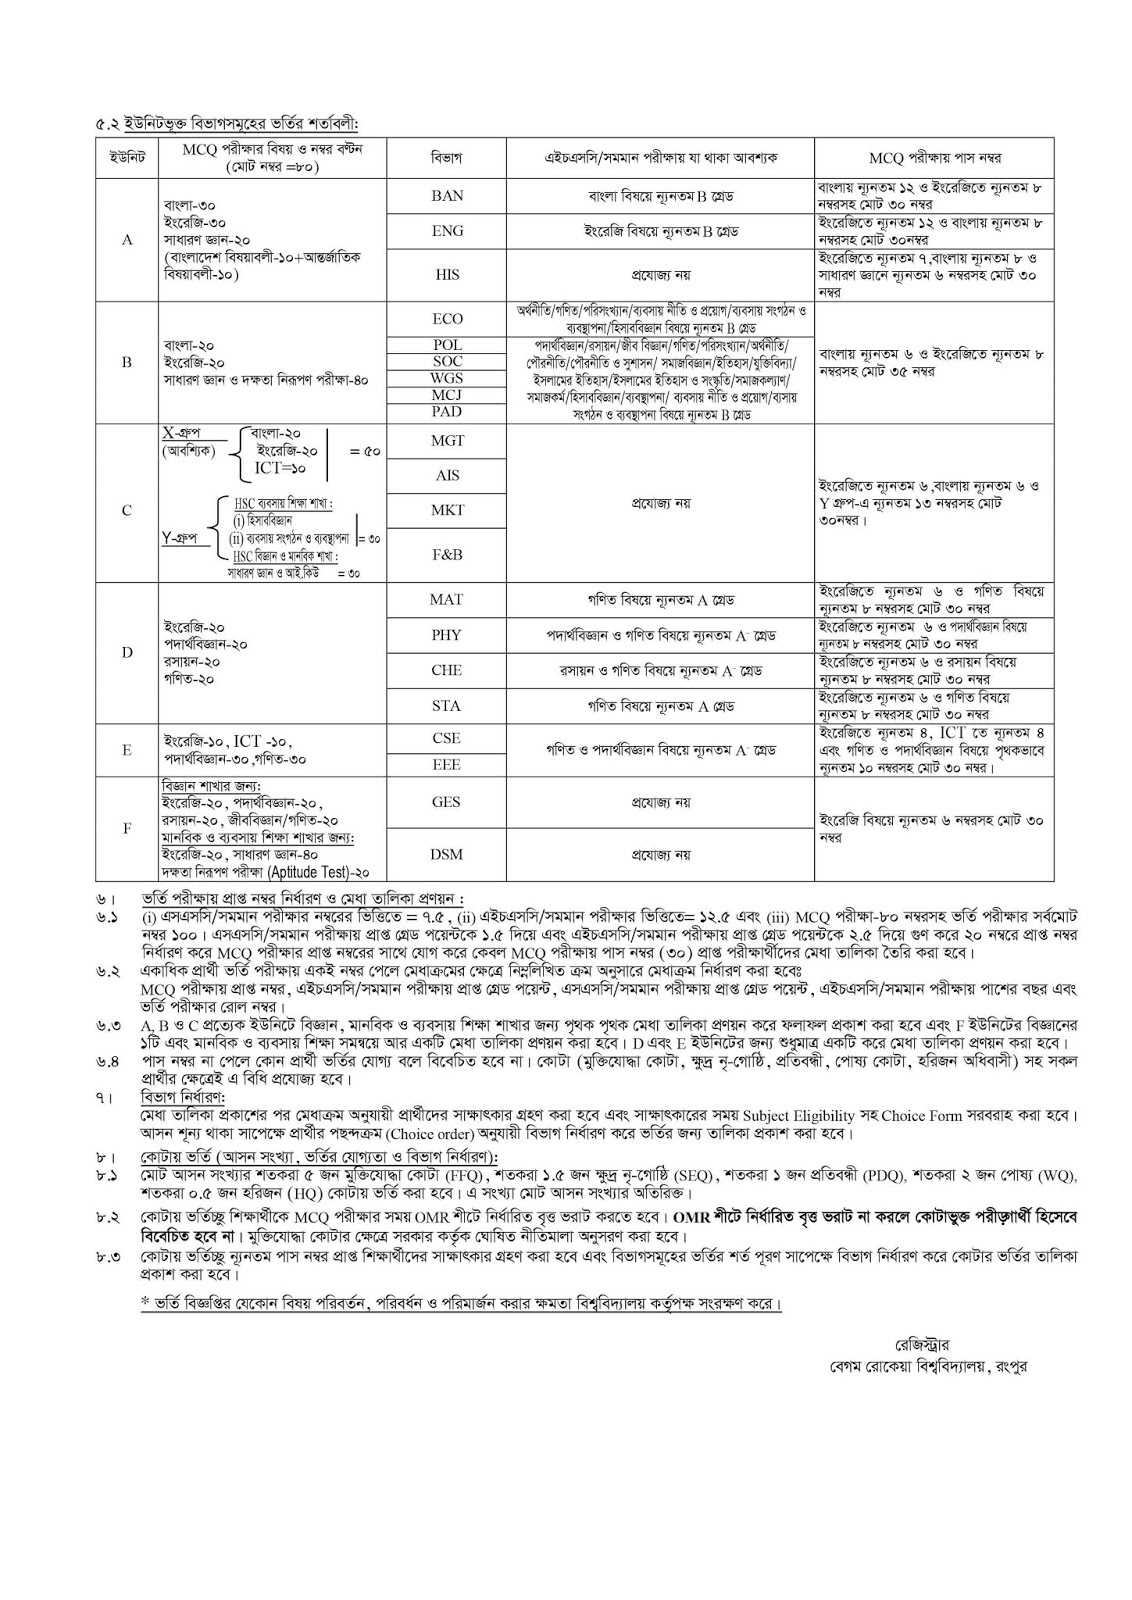 Begum Rokeya University Admission Circular and Prospectus 2018-2019